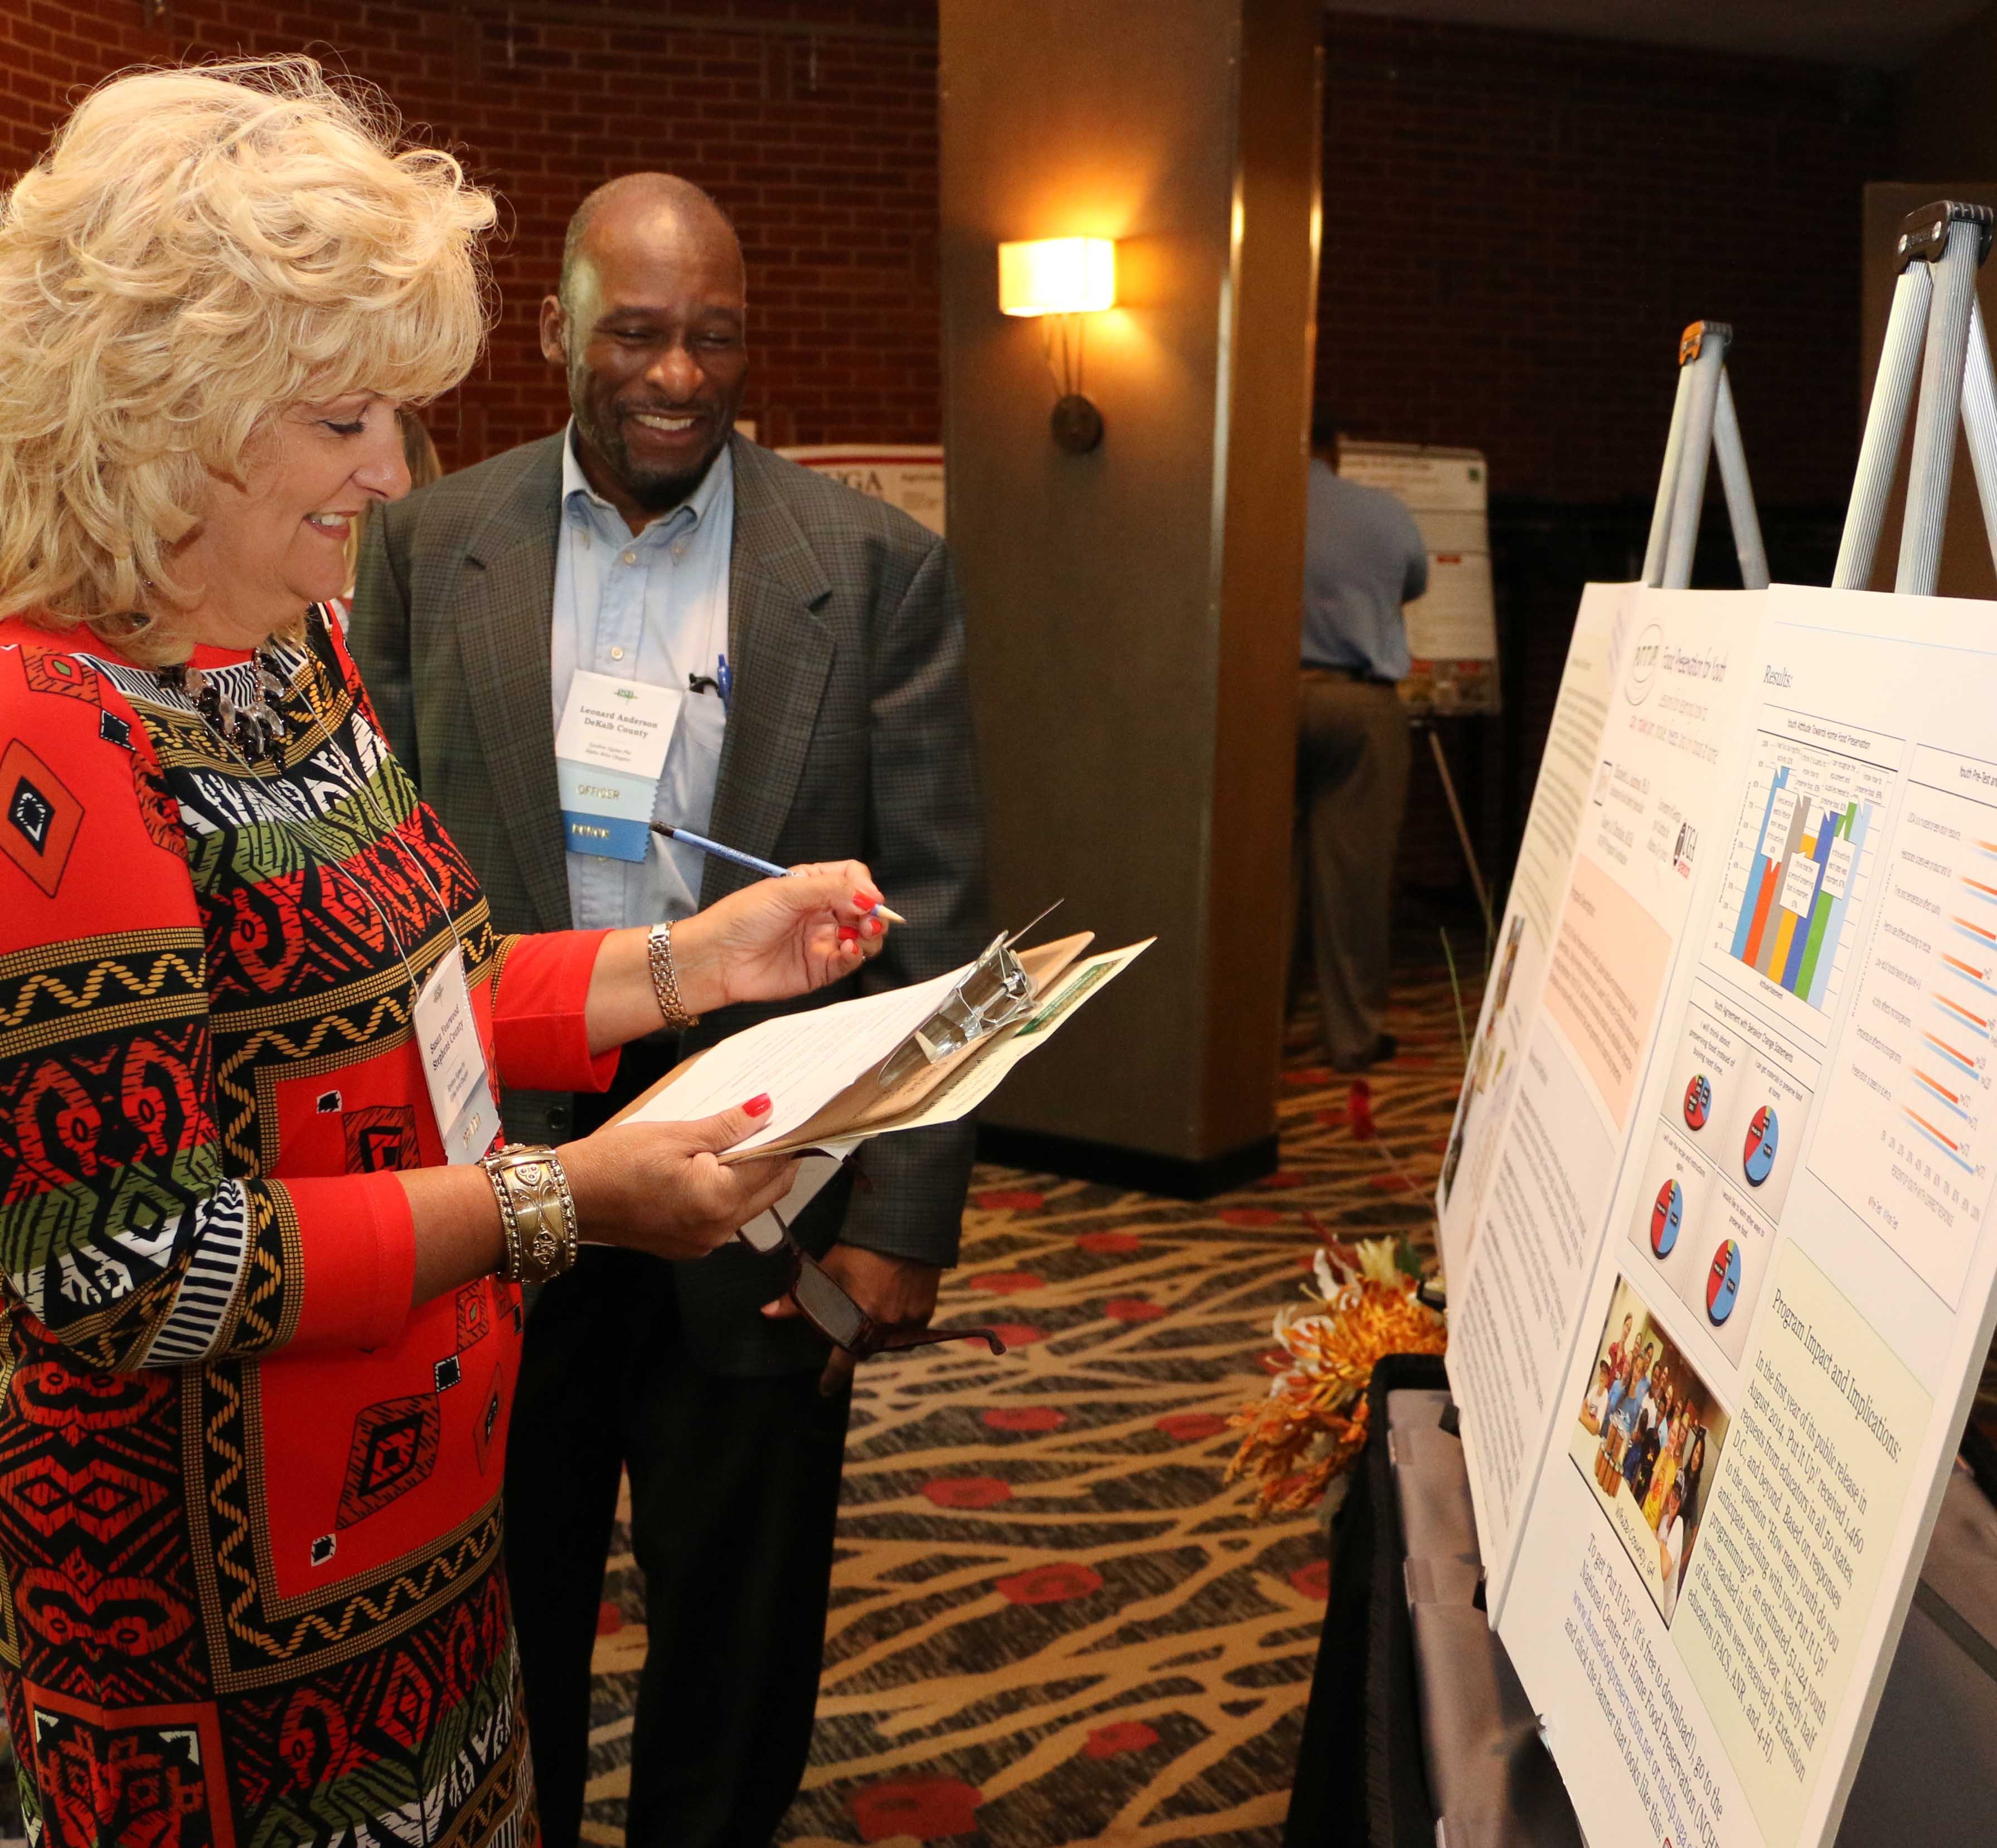 Dekalb County Extension Agent Leonard Anderson and Stephens County Extension Agent Susan Yearwood judge a poster presentation during the 2015 Georgia meeting of Epsilon Sigma Phi. Epsilon Sigma Phi is a national professional organization for those working in the Cooperative Extension System.